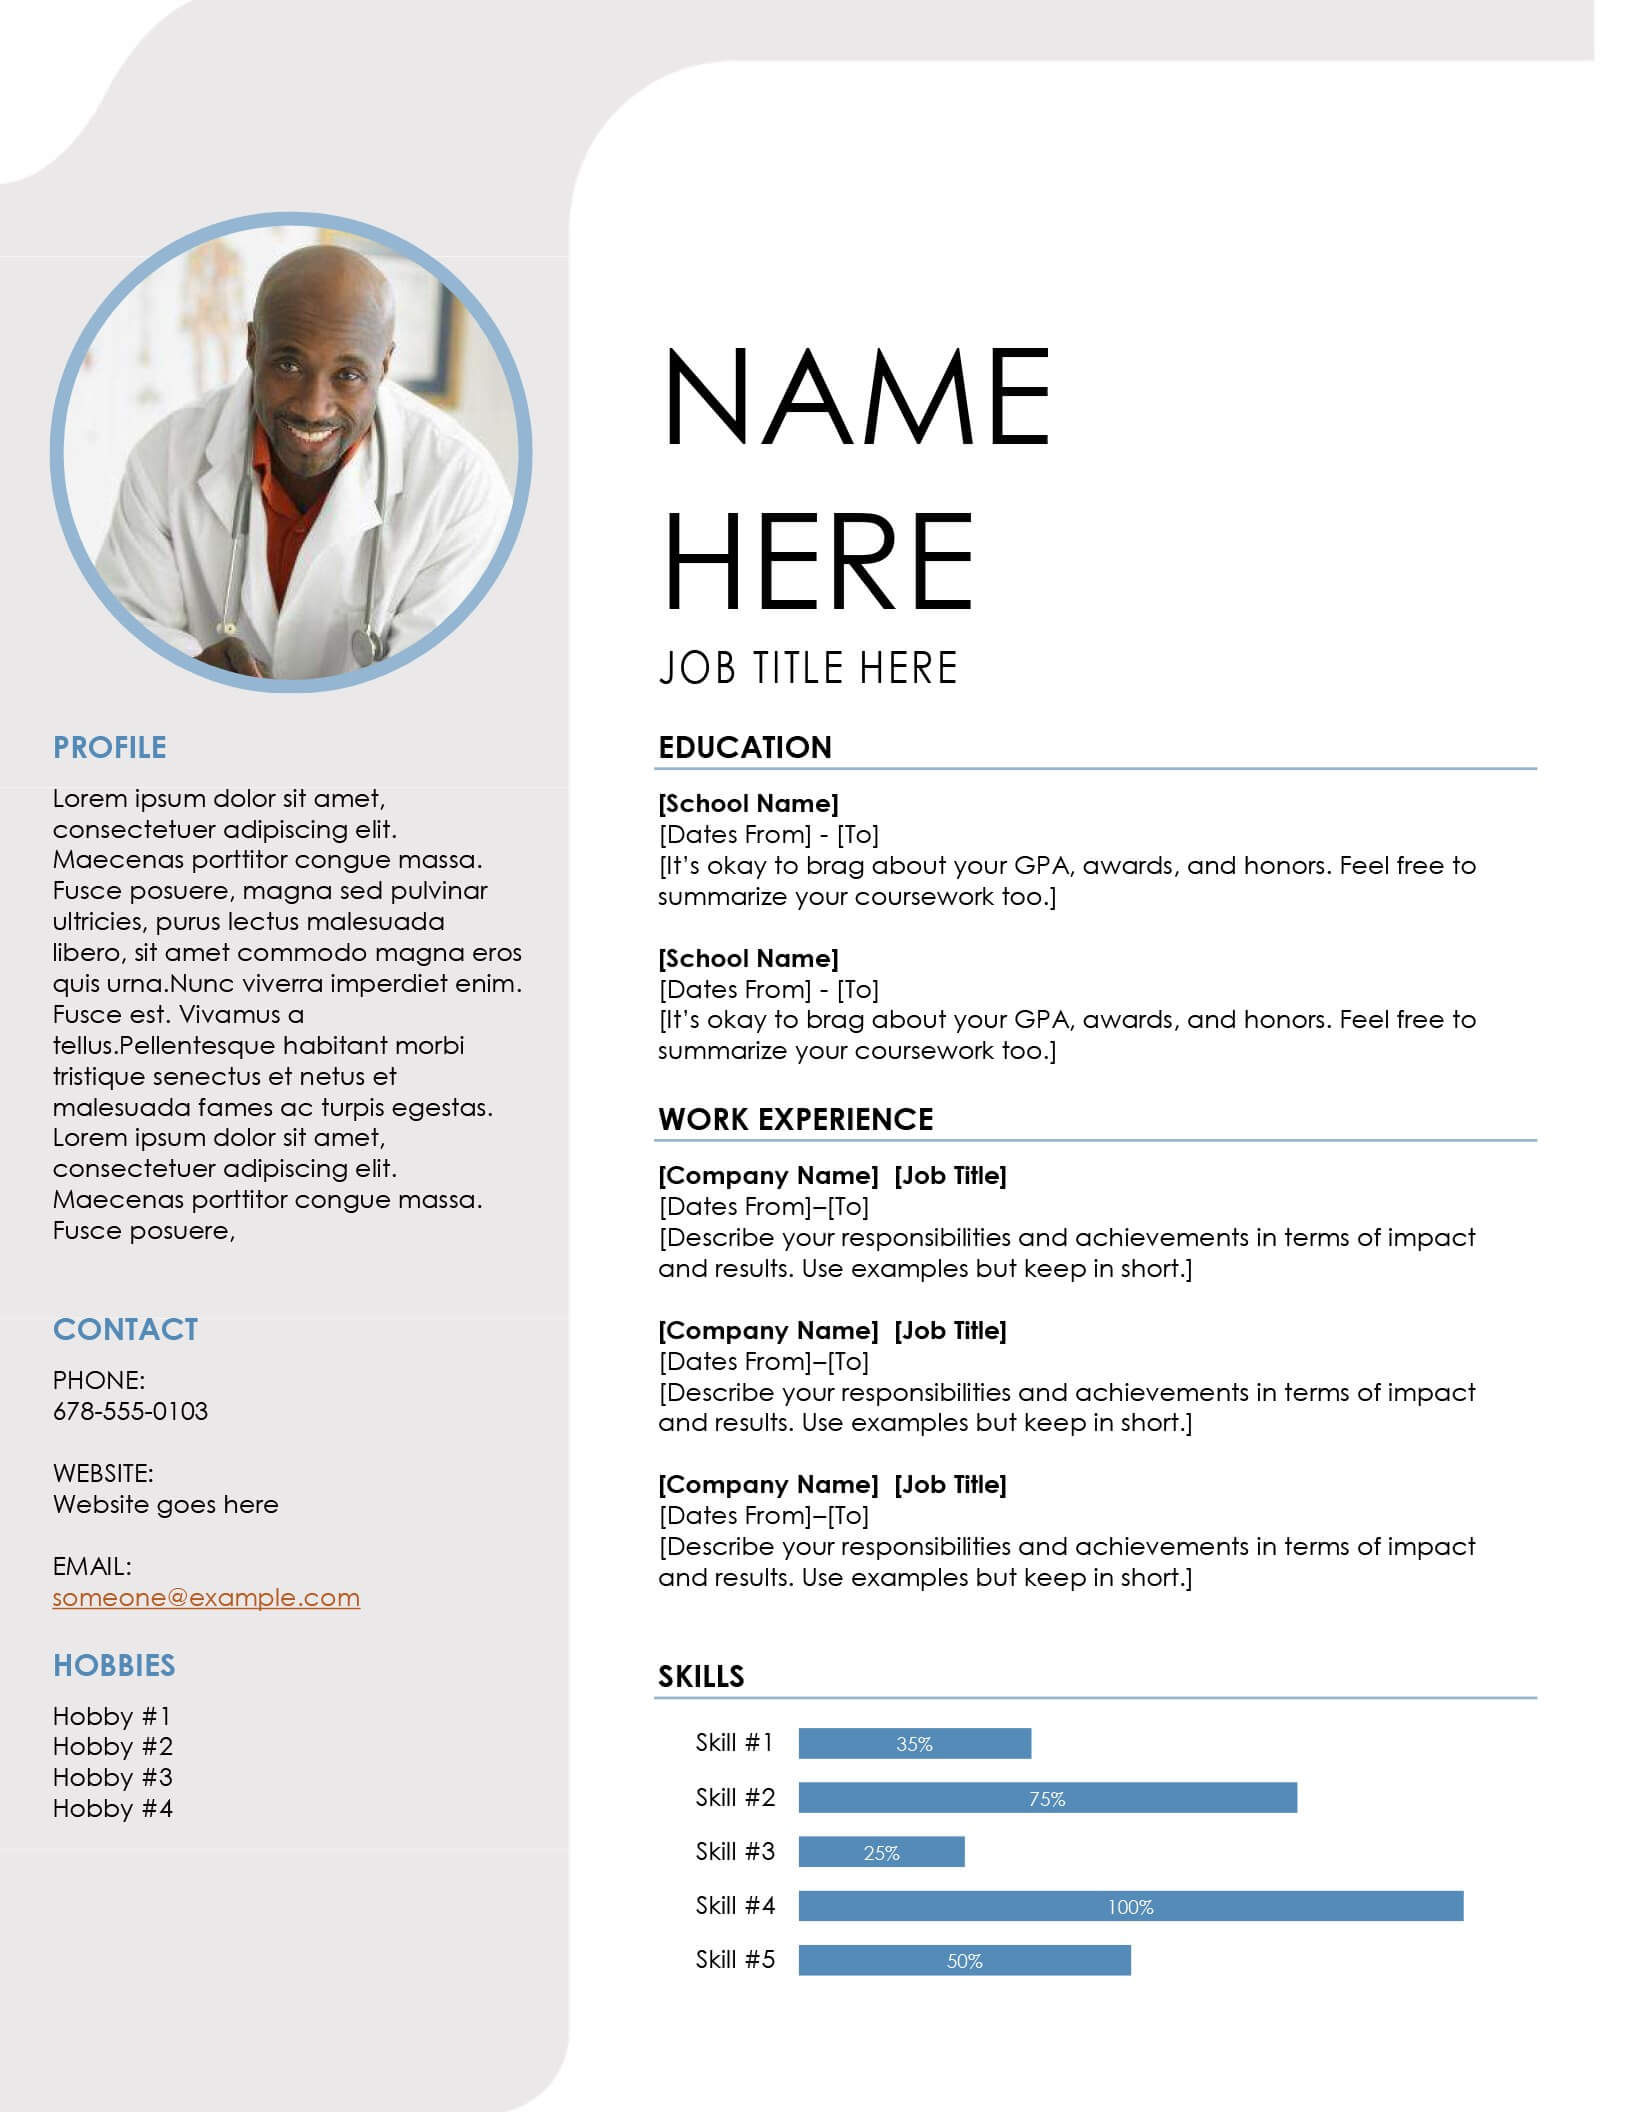 Resumes And Cover Letters - Office Intended For Microsoft Word Resume Template Free